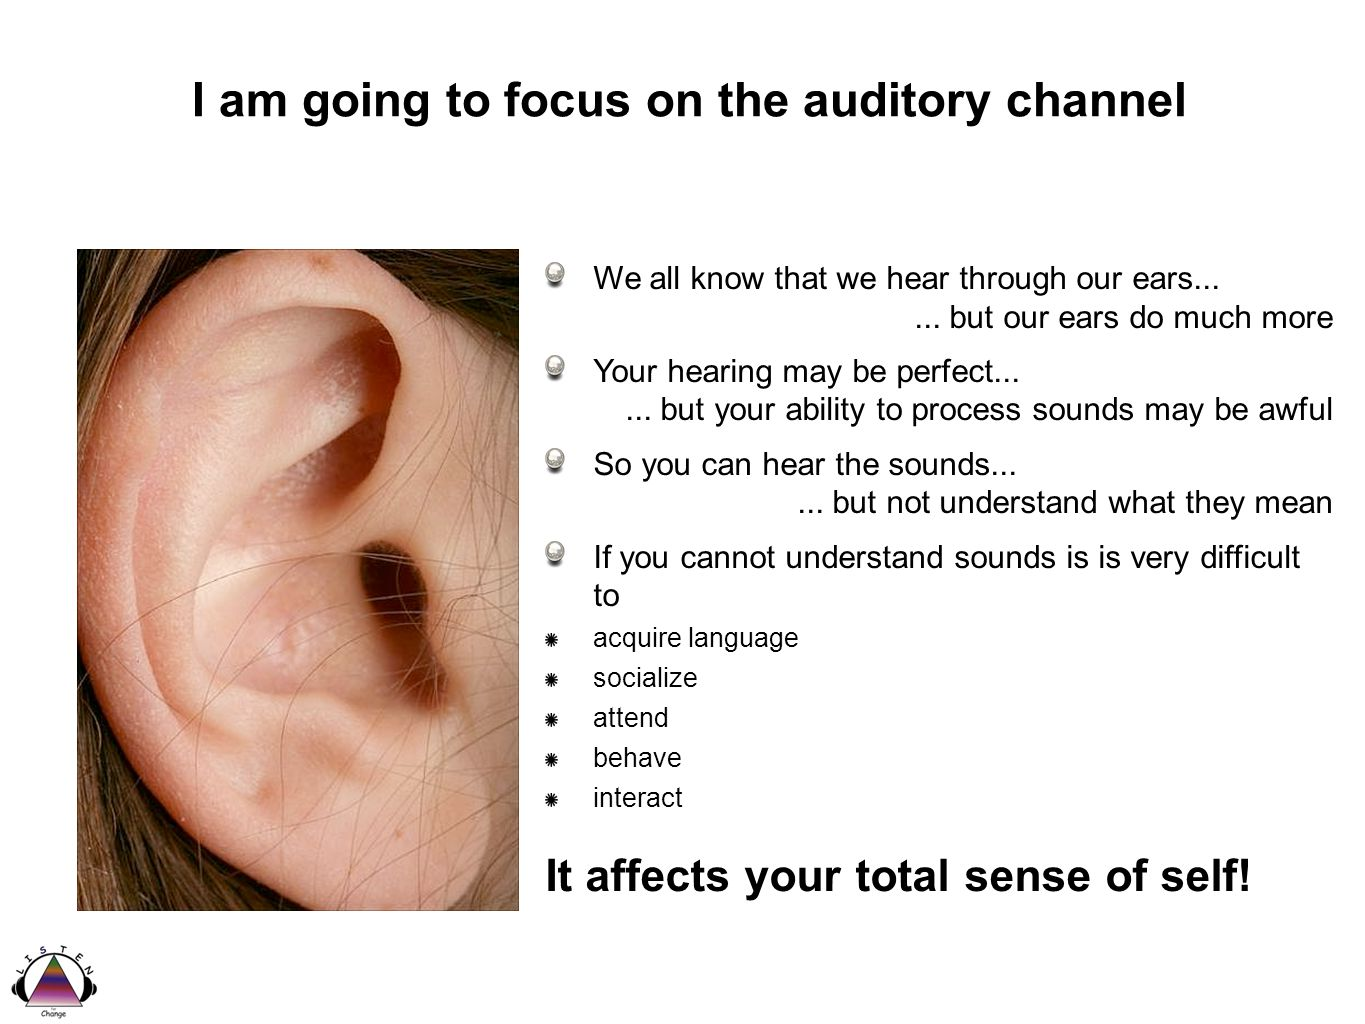 I am going to focus on the auditory channel We all know that we hear through our ears......